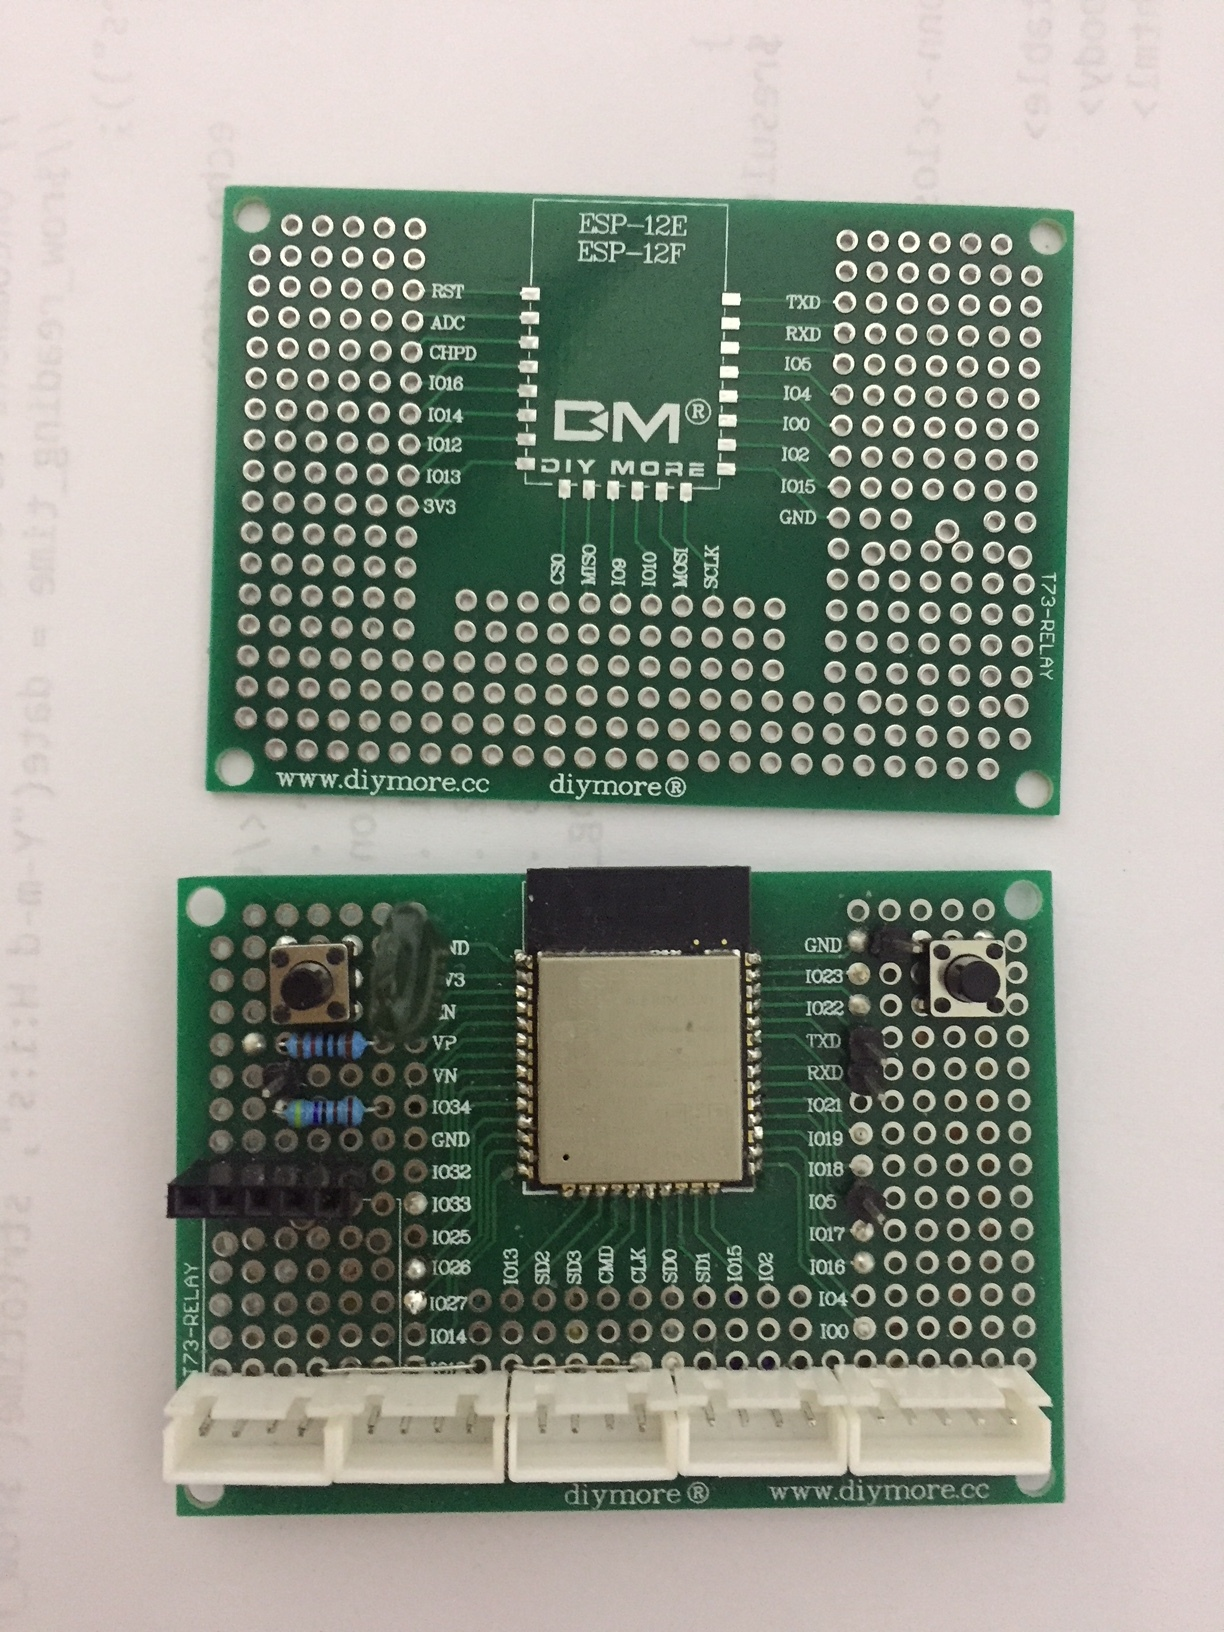 ESP32 and ESP12 custom pcb - Need Help With My Project